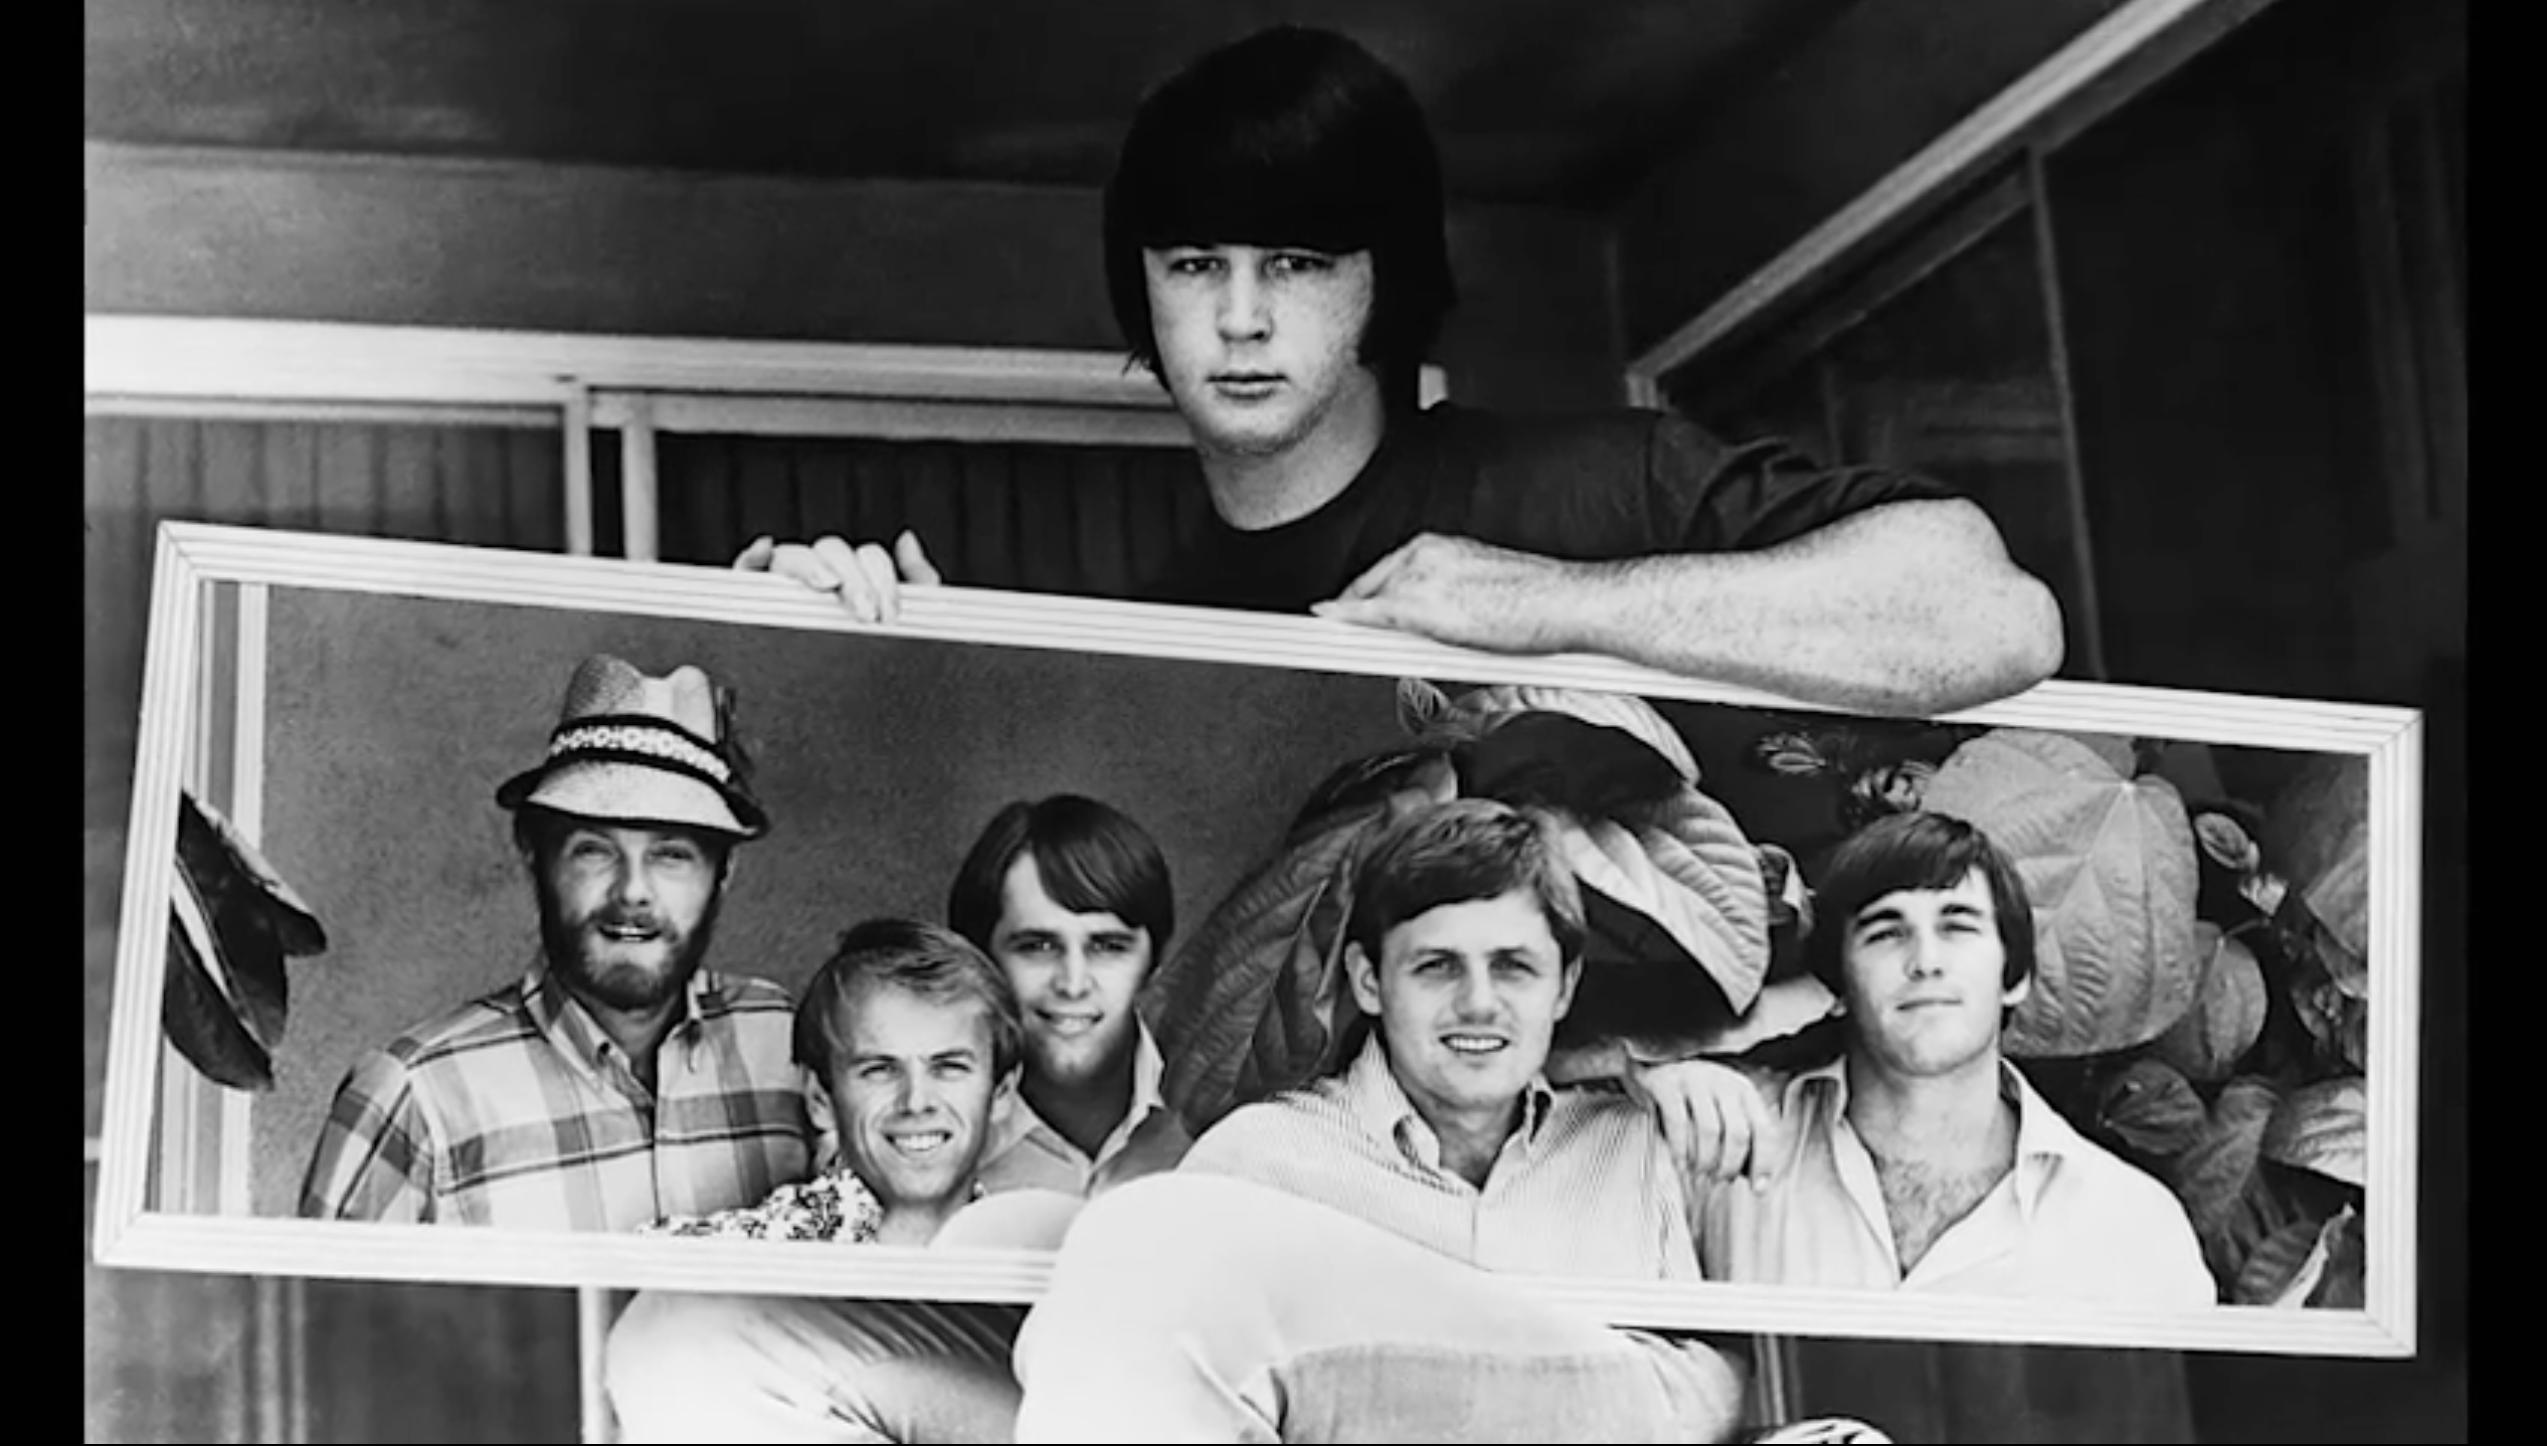 Brian Wilson and The Beach Boys in Echo in the Canyon (2018)